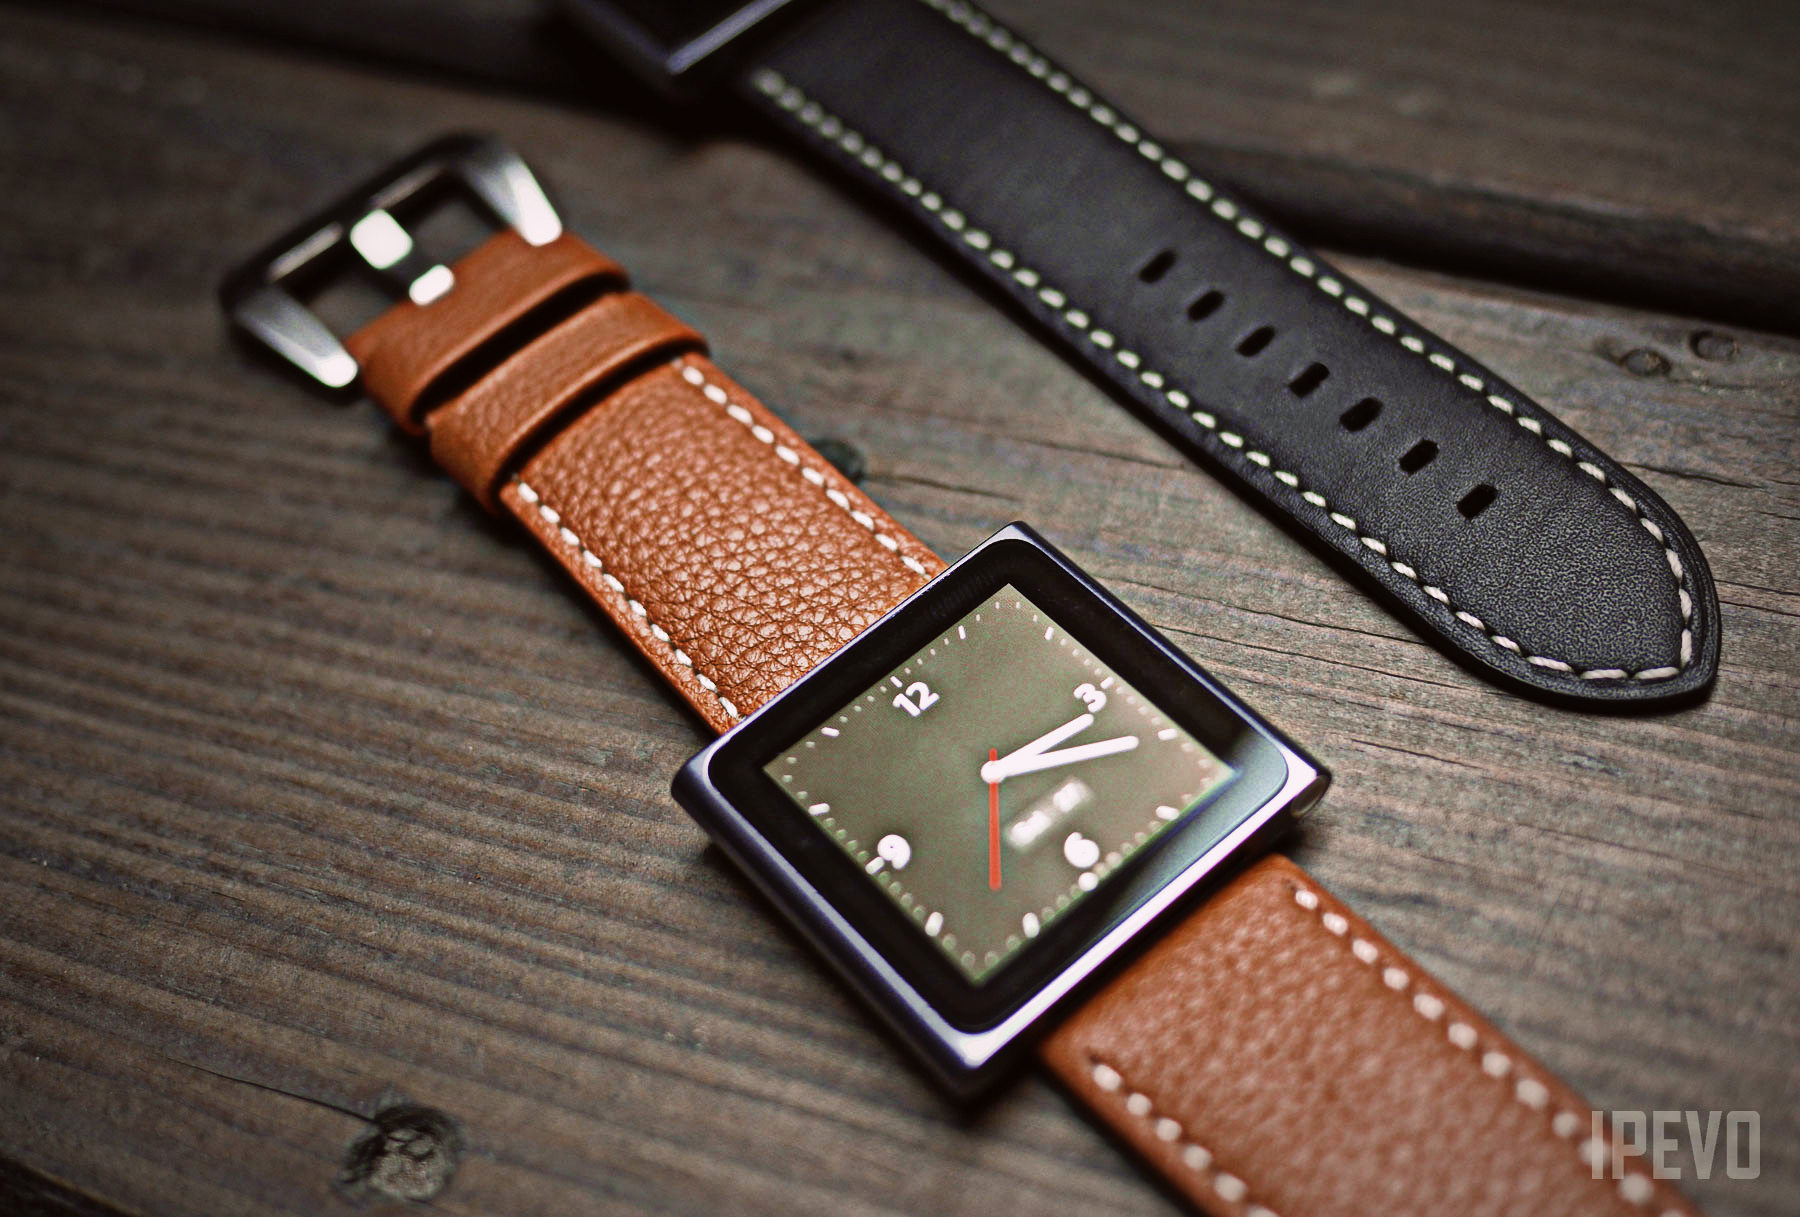 ipevo-ipod-nano-watch-strap